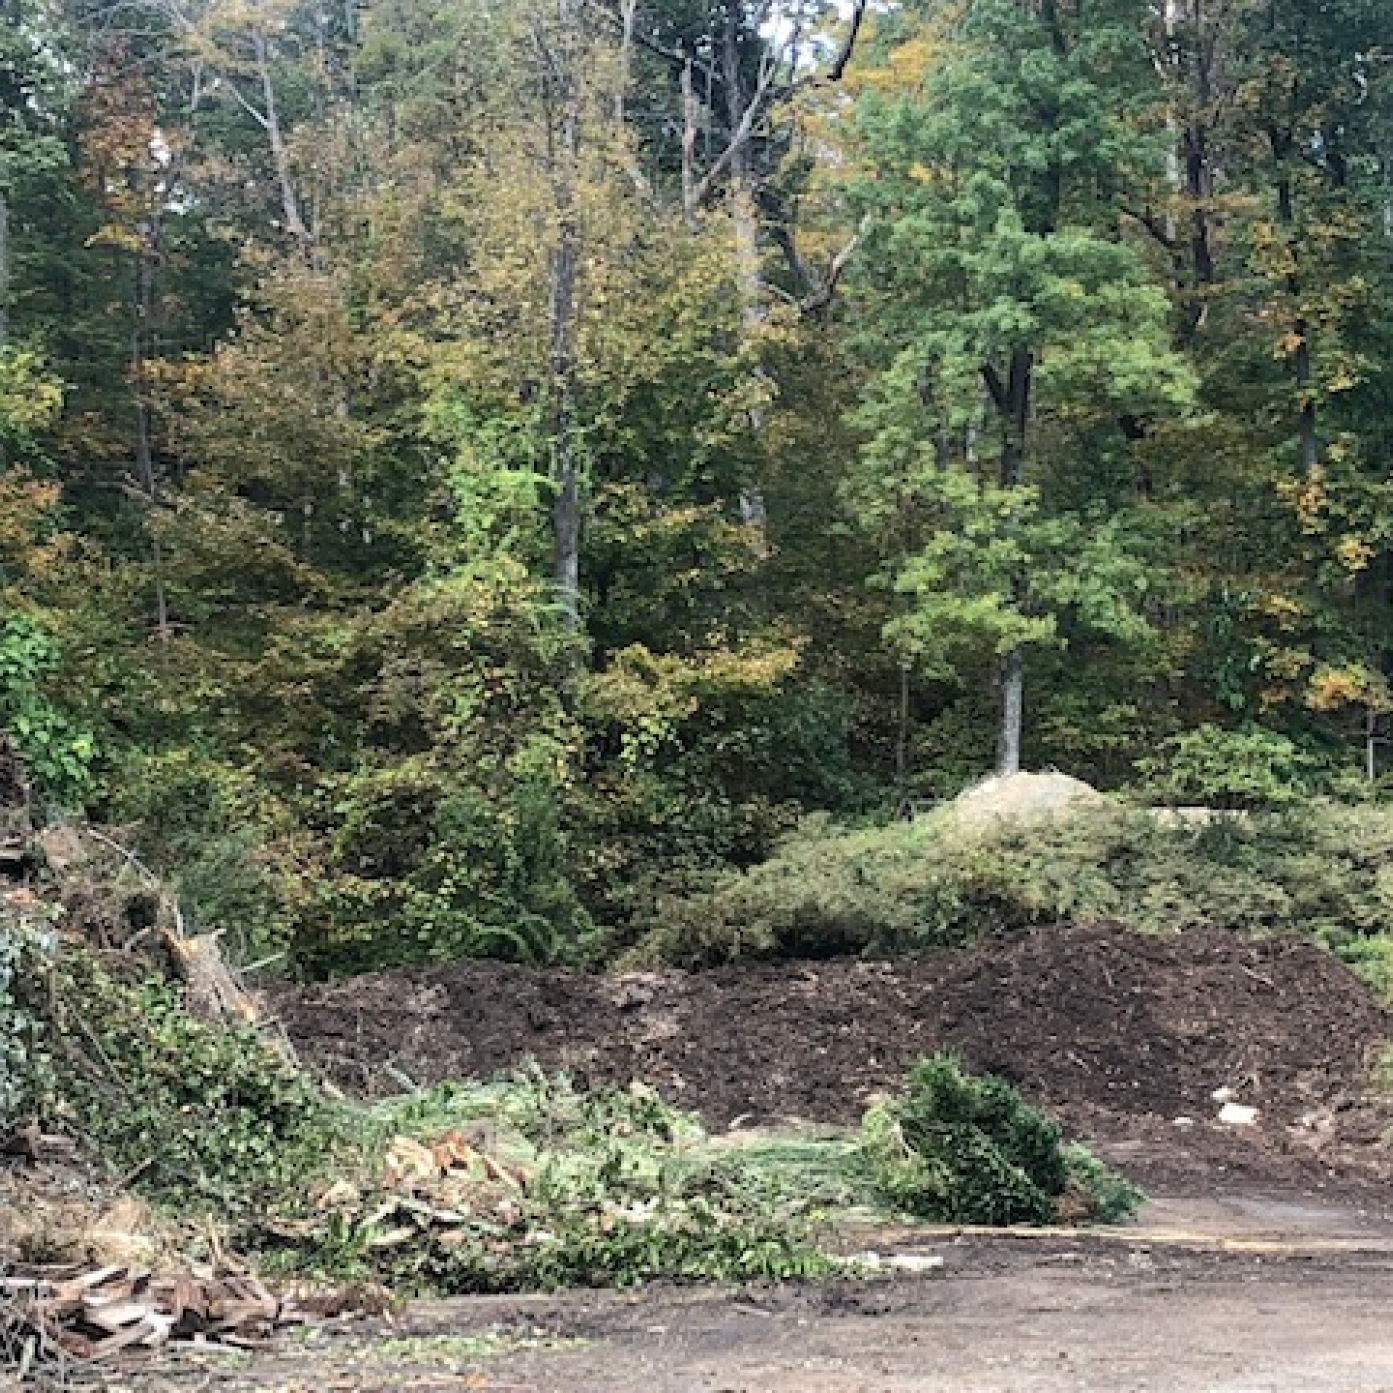 Vegetative waste converted into natural mulch